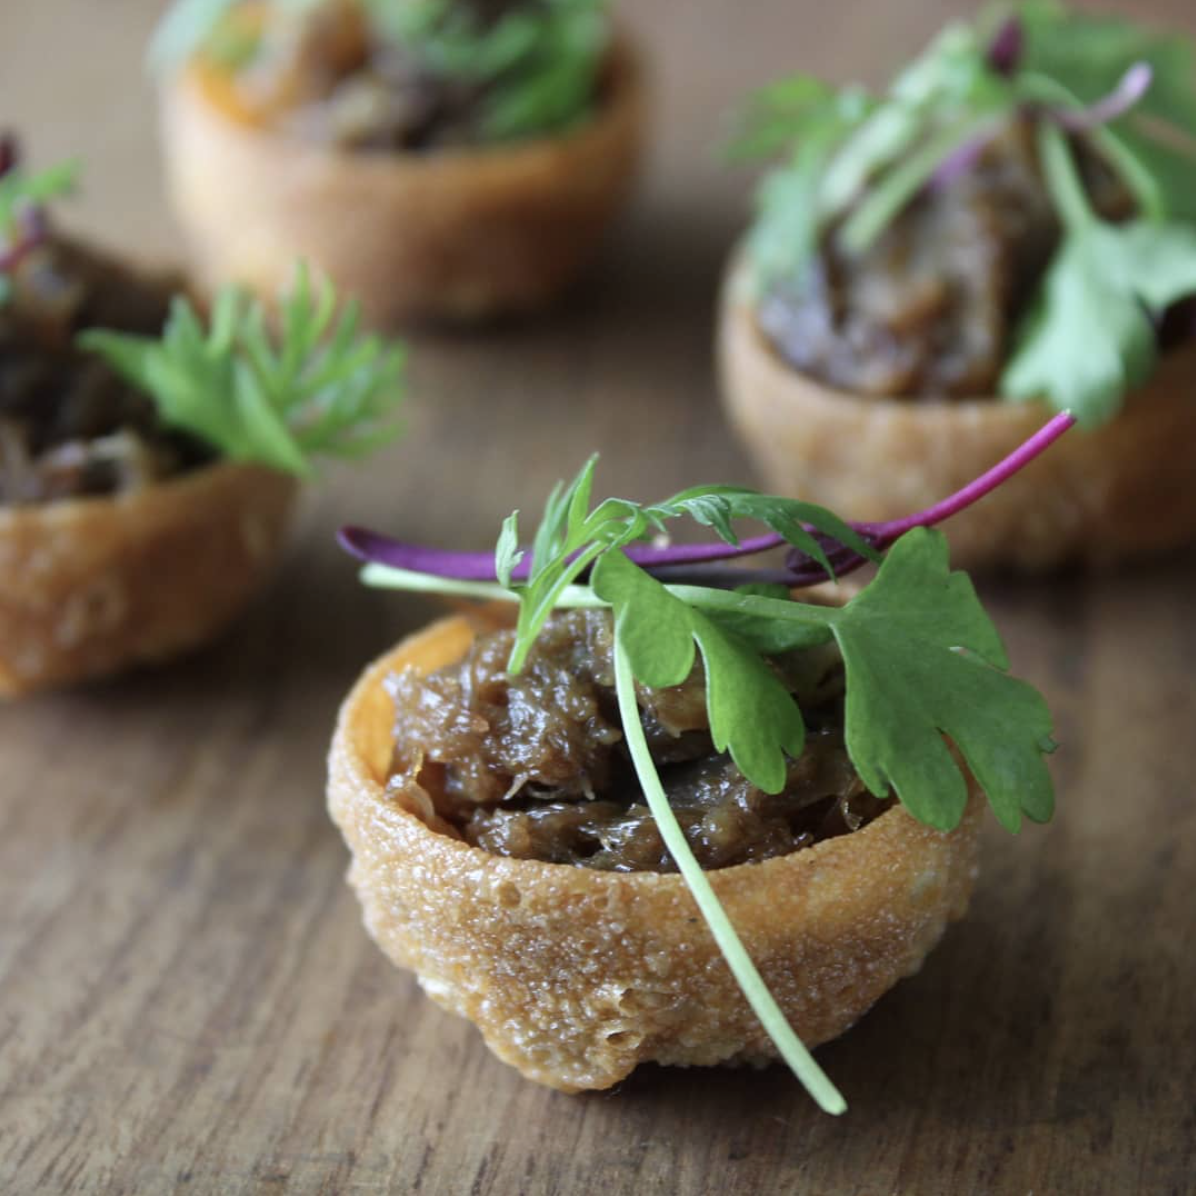 - Duck confit croustades with microgreens